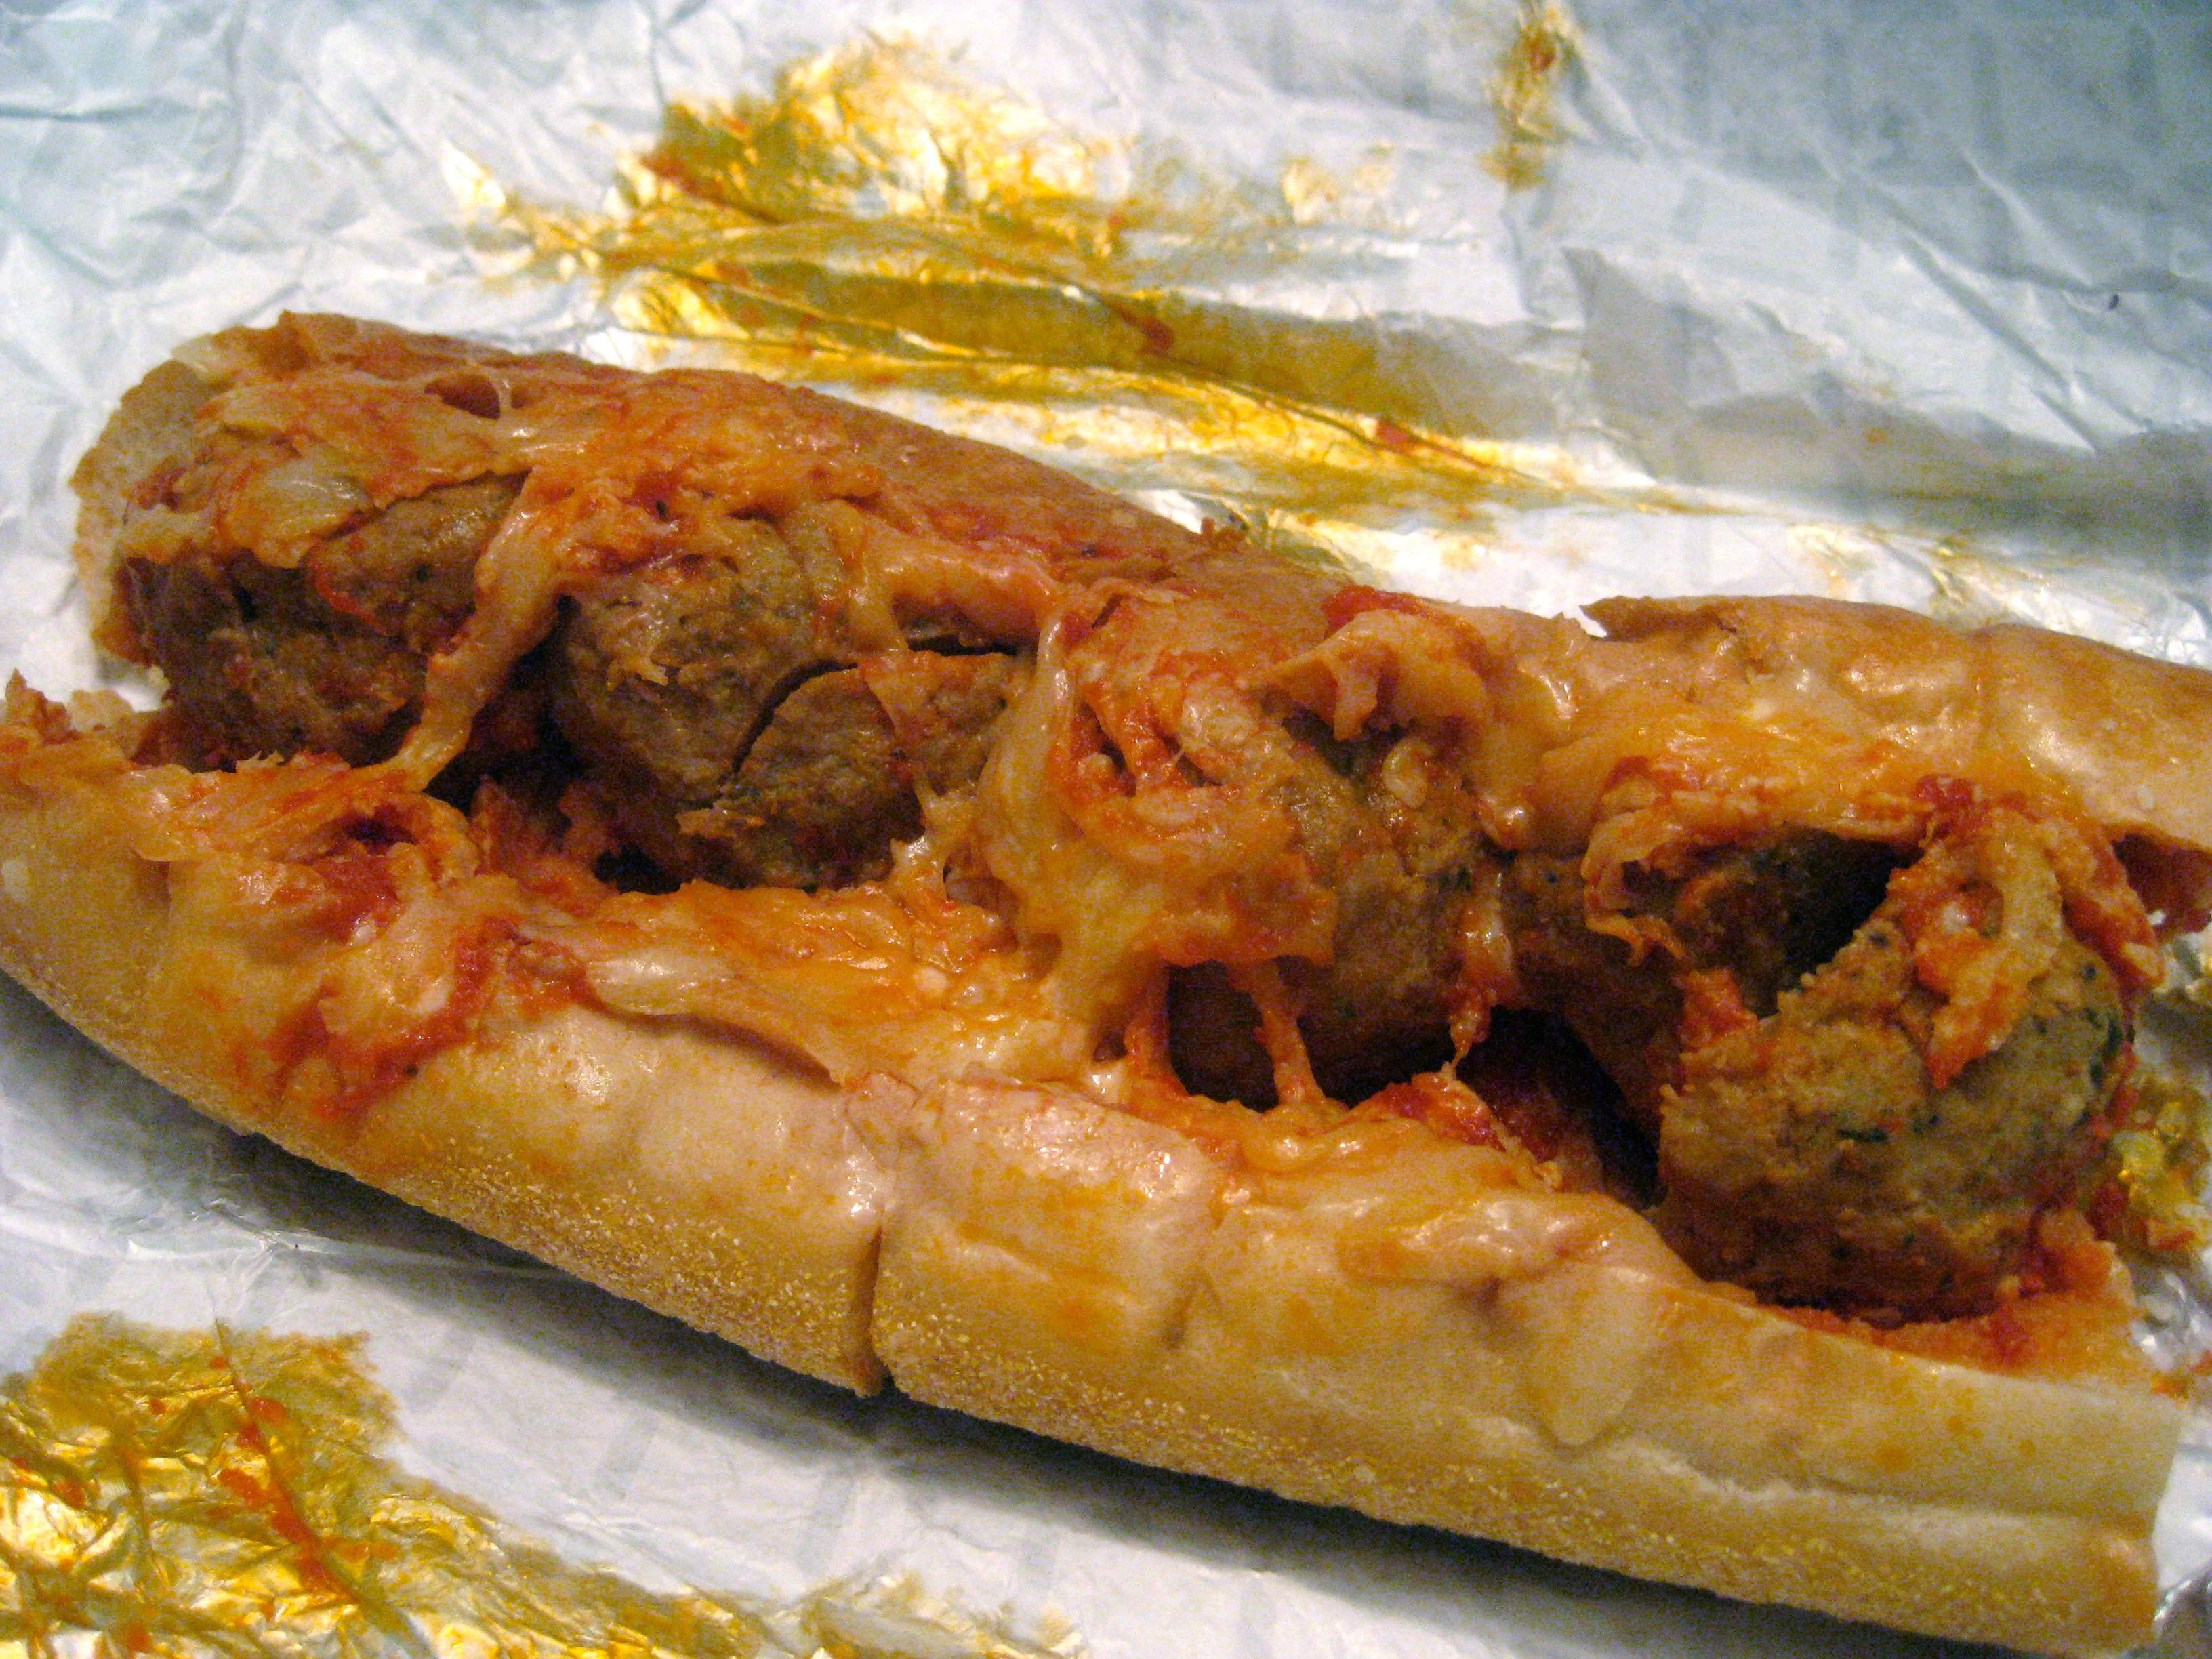 The award-winning meatball sub from Pastifico in Philly. Photo by Jamie.